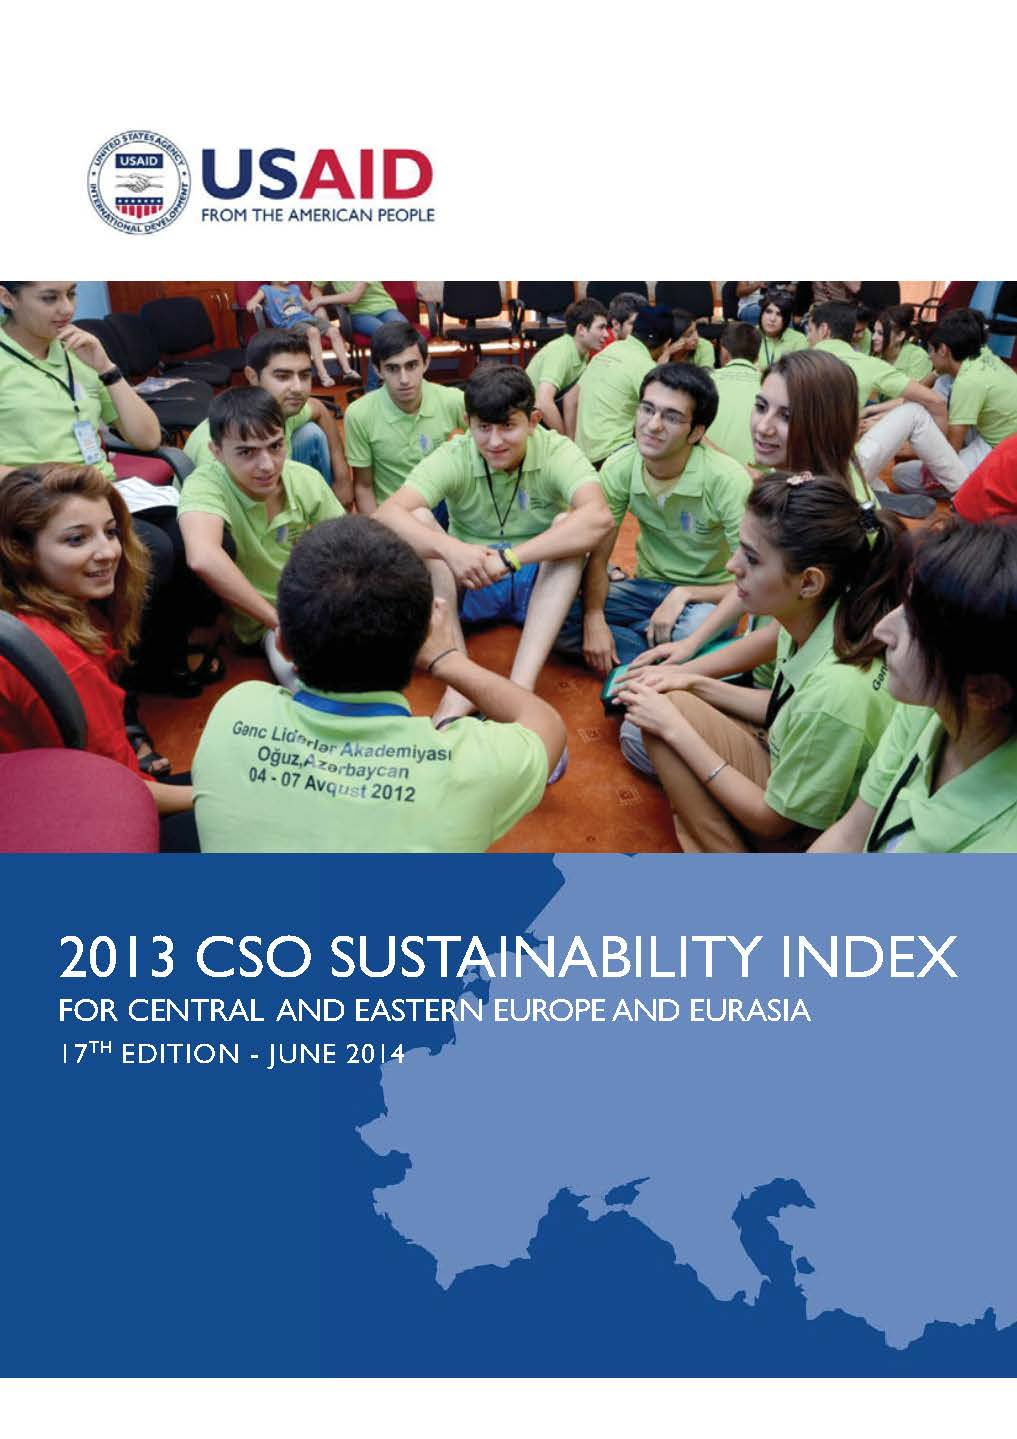 CIVIL SOCIETY ORGANIZATIONS (CSO) SUSTAINABILITY in 2013